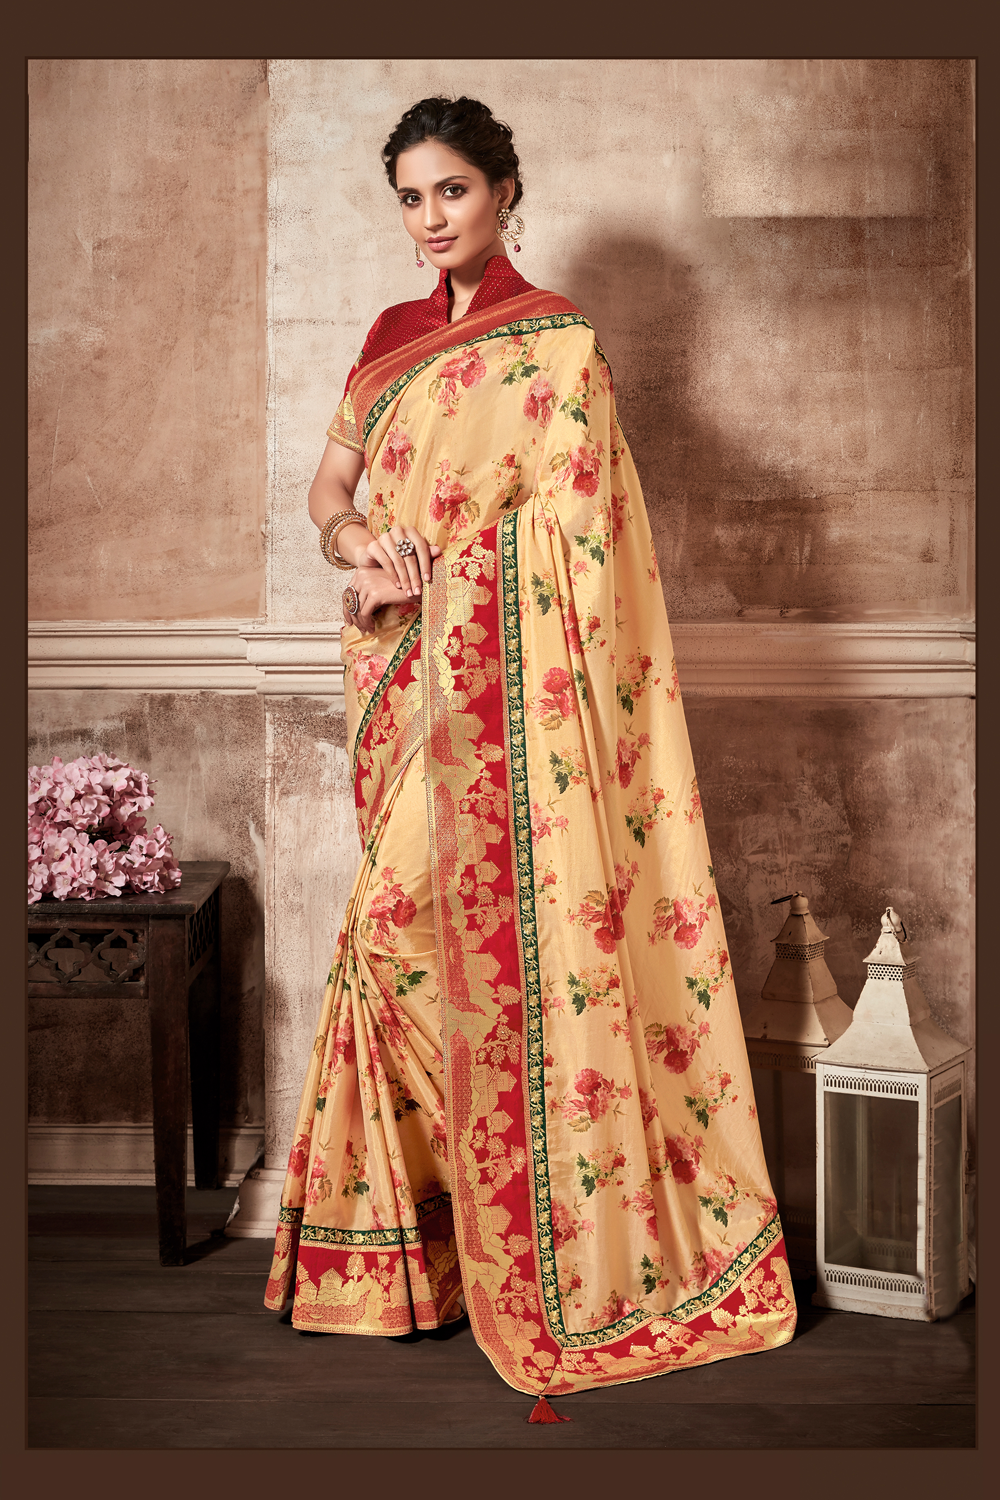 Floral printed saree with border